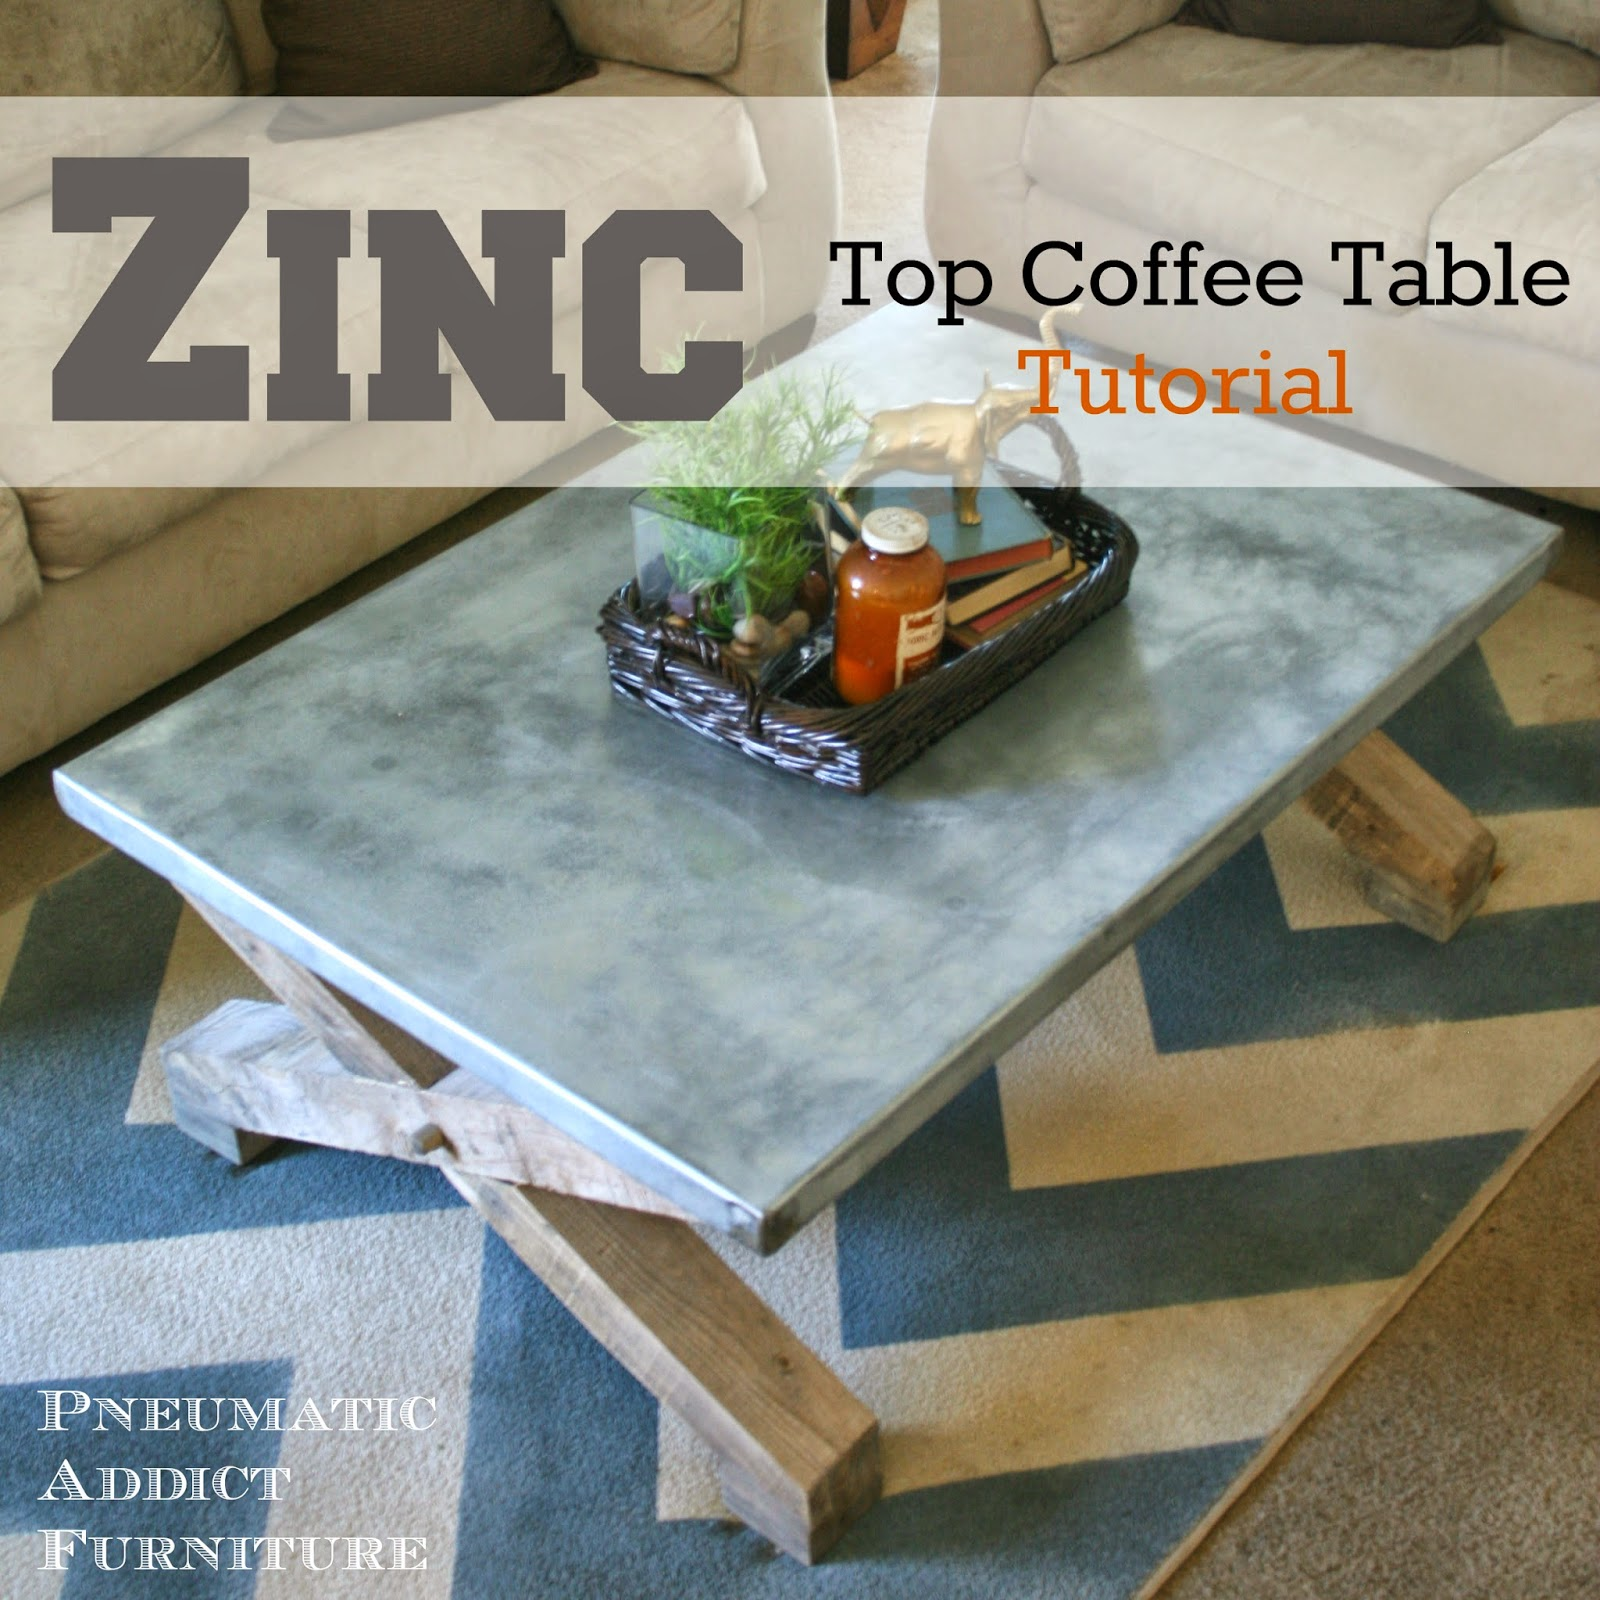 Zinc Top Coffee Table Tutorial: Pottery Barn Knock-Off | Pneumatic ...